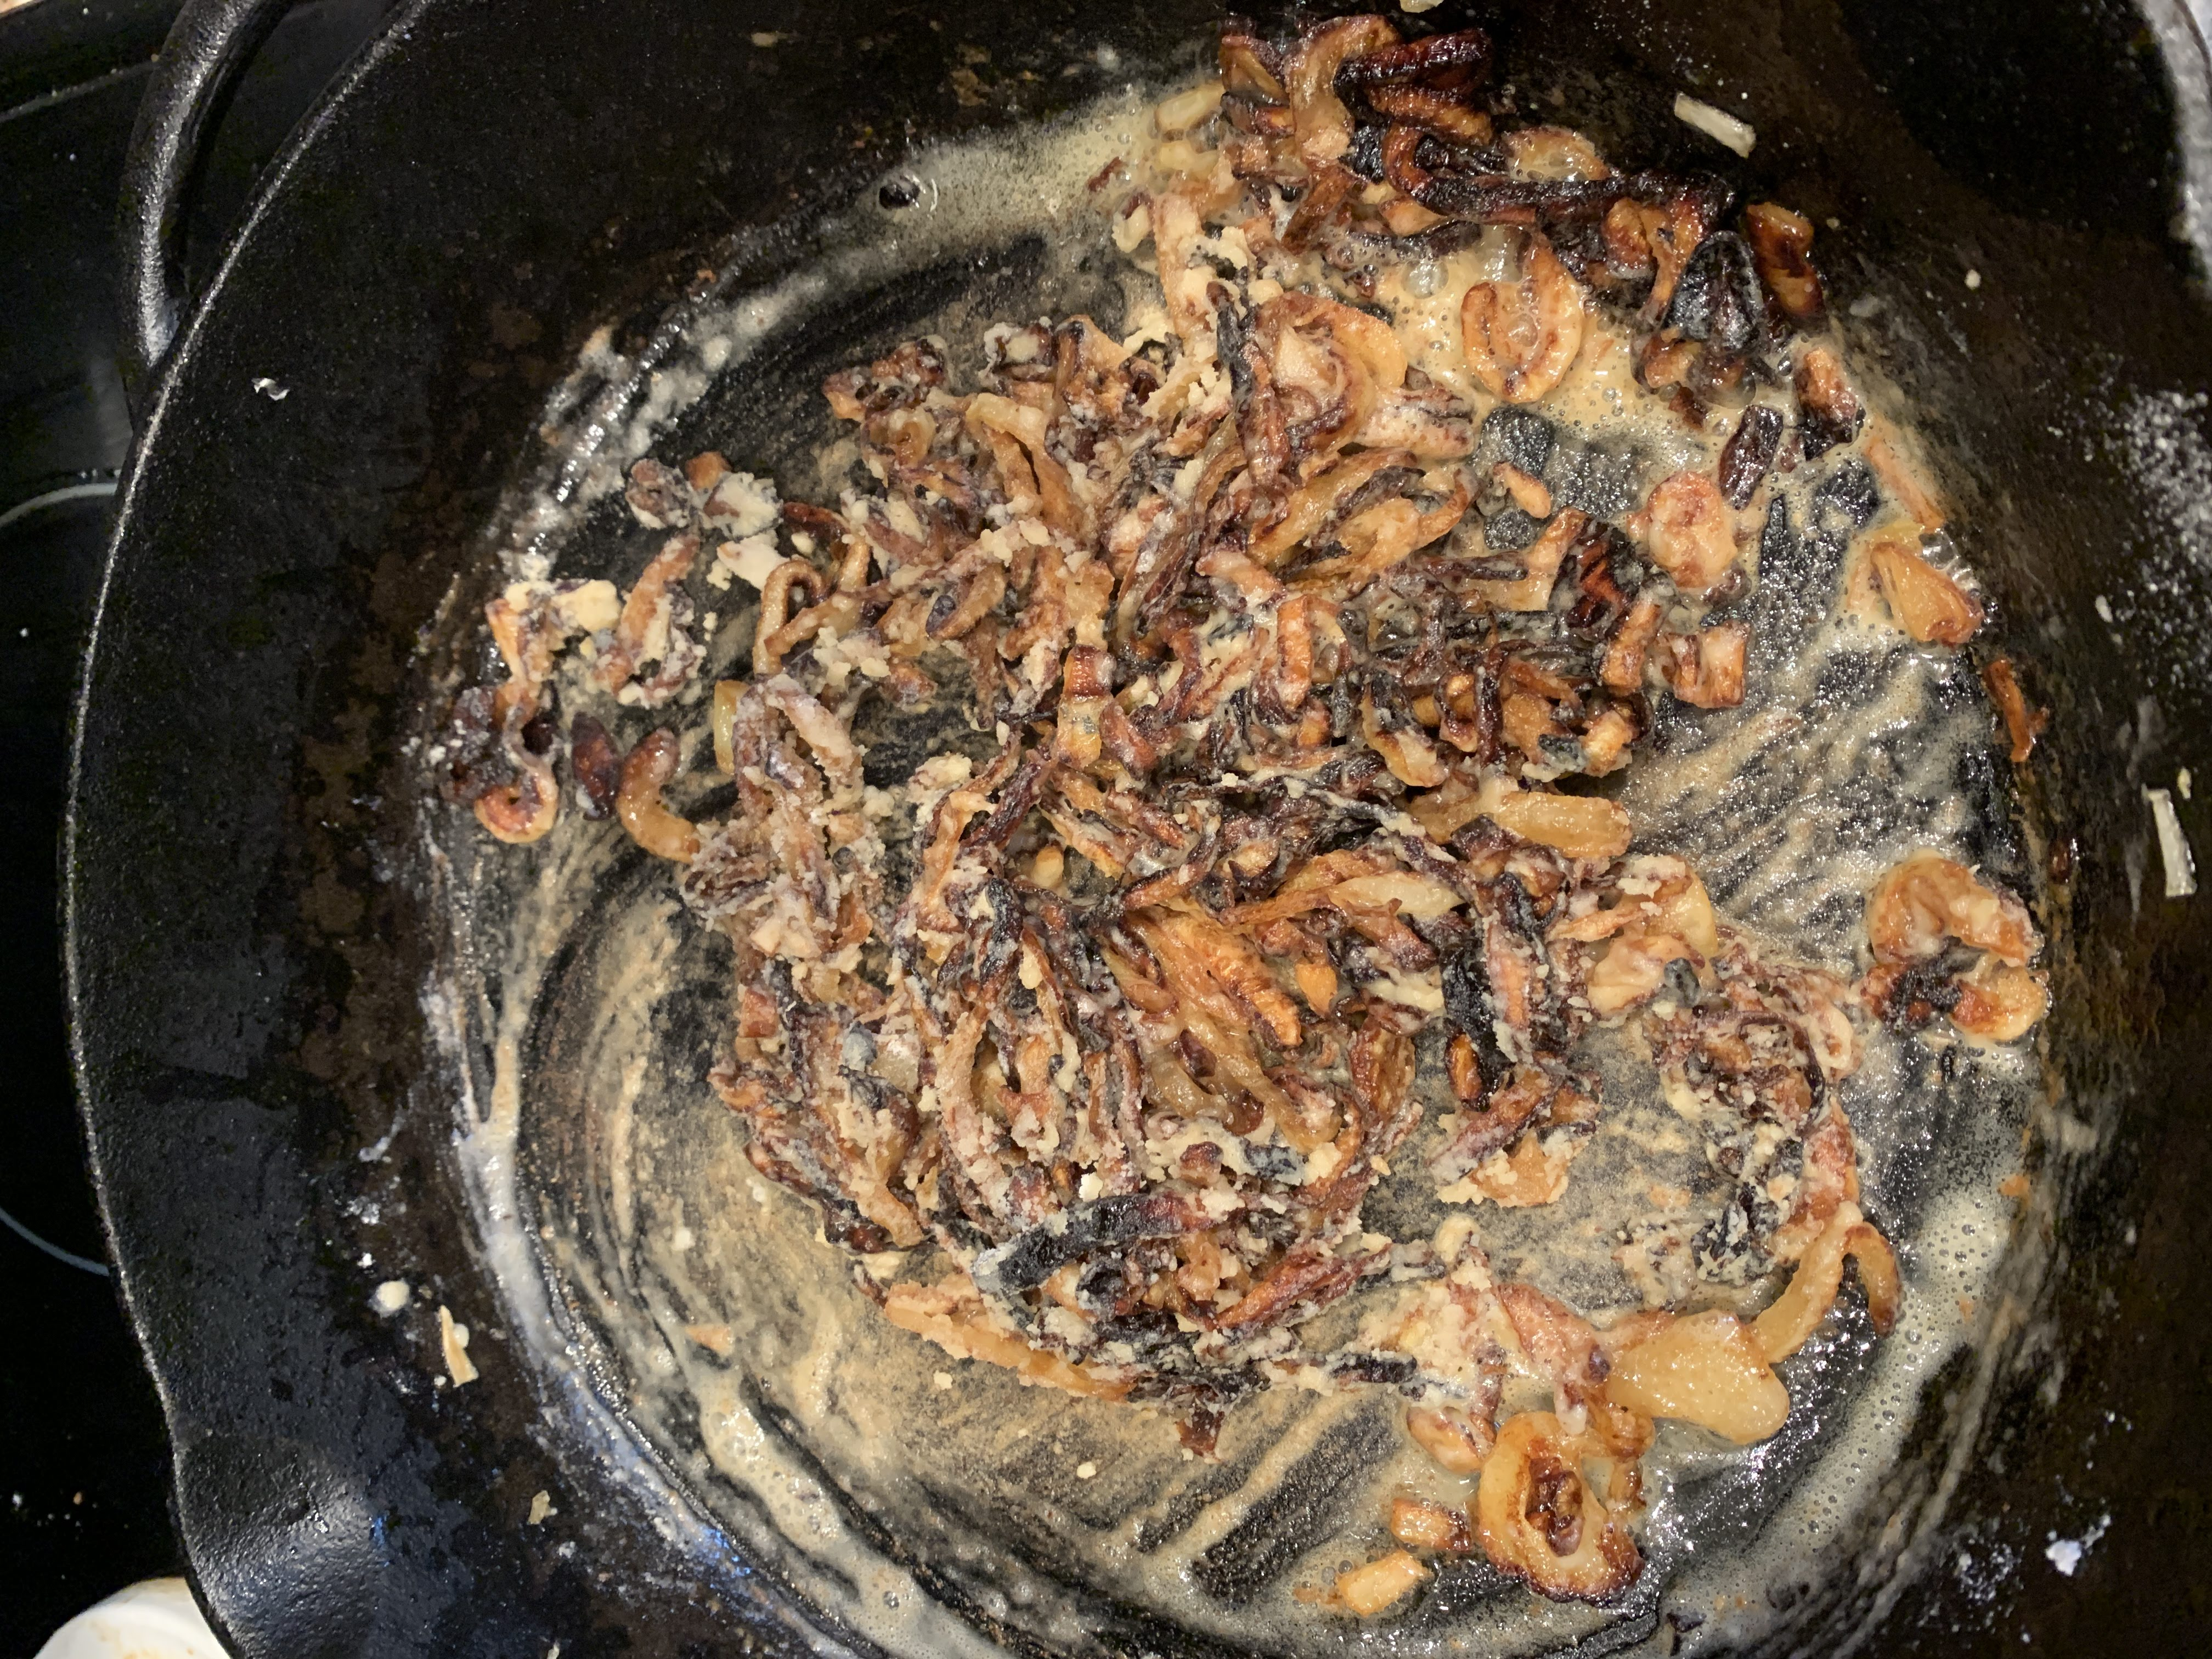 cast iron skillet with fried onions and flour mixed into a slurry